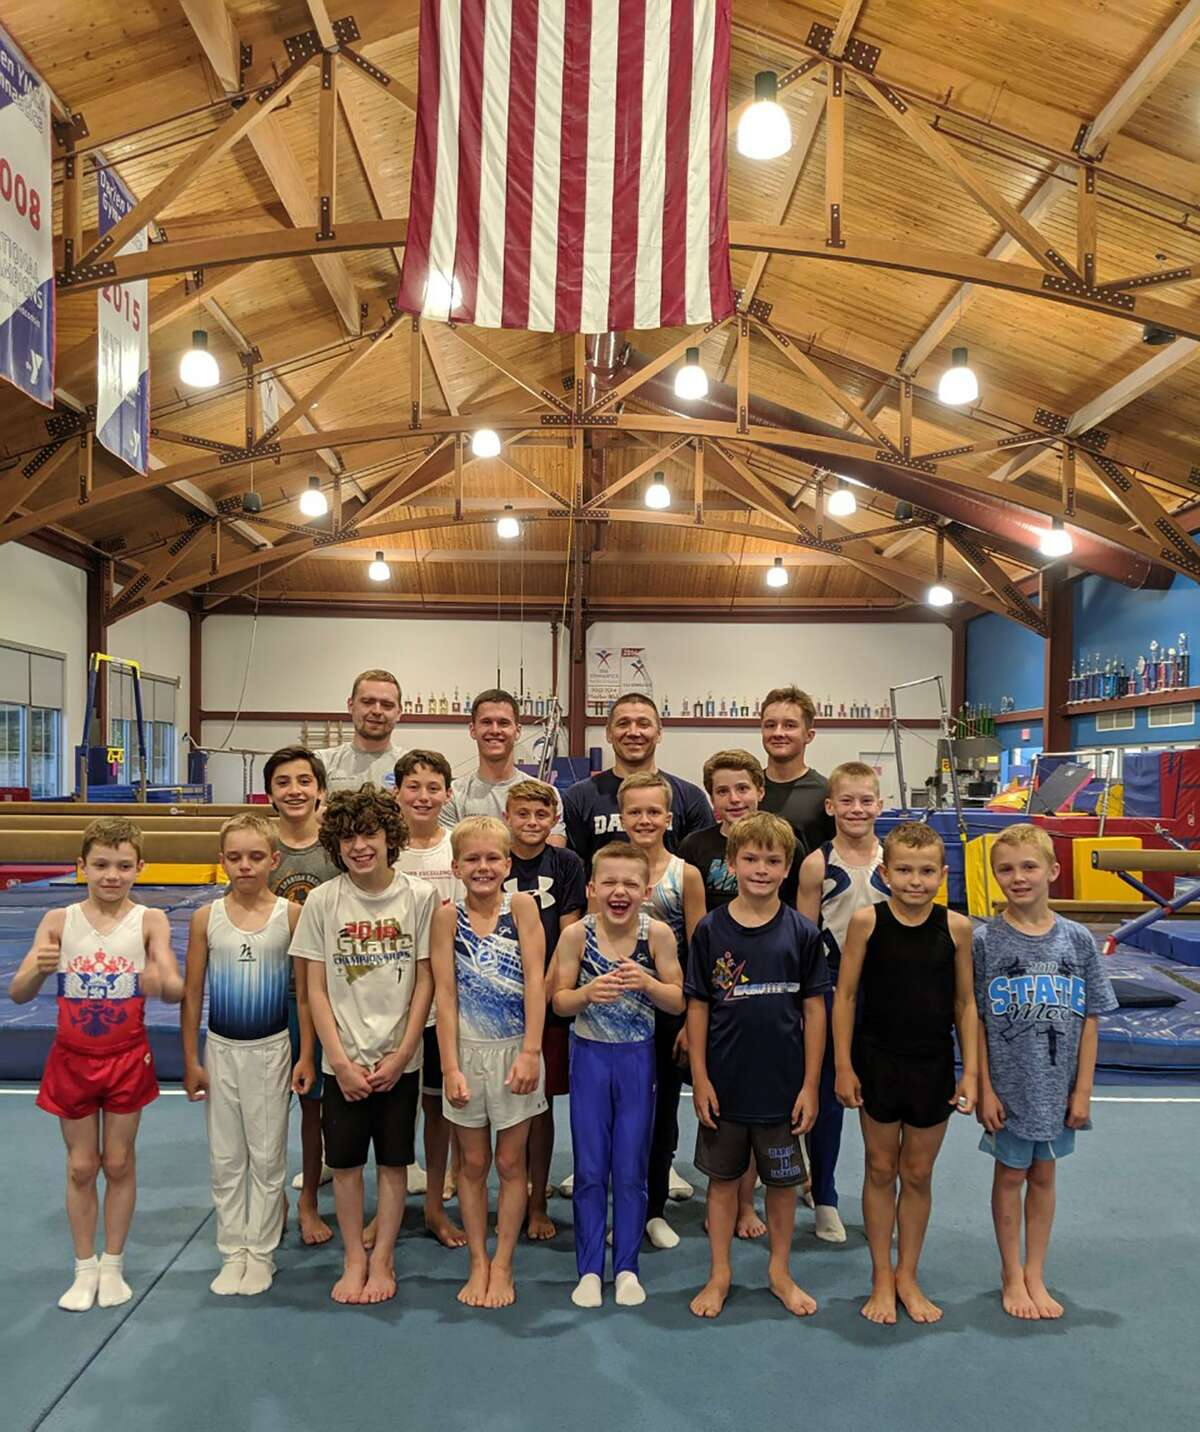 The Darien YMCA boys gymnastics team hosted the Dynamo Moscow team from Russia for a week, June 24-30. The local gymnasts trained with their guests and held a party at Noroton Bay Beach.